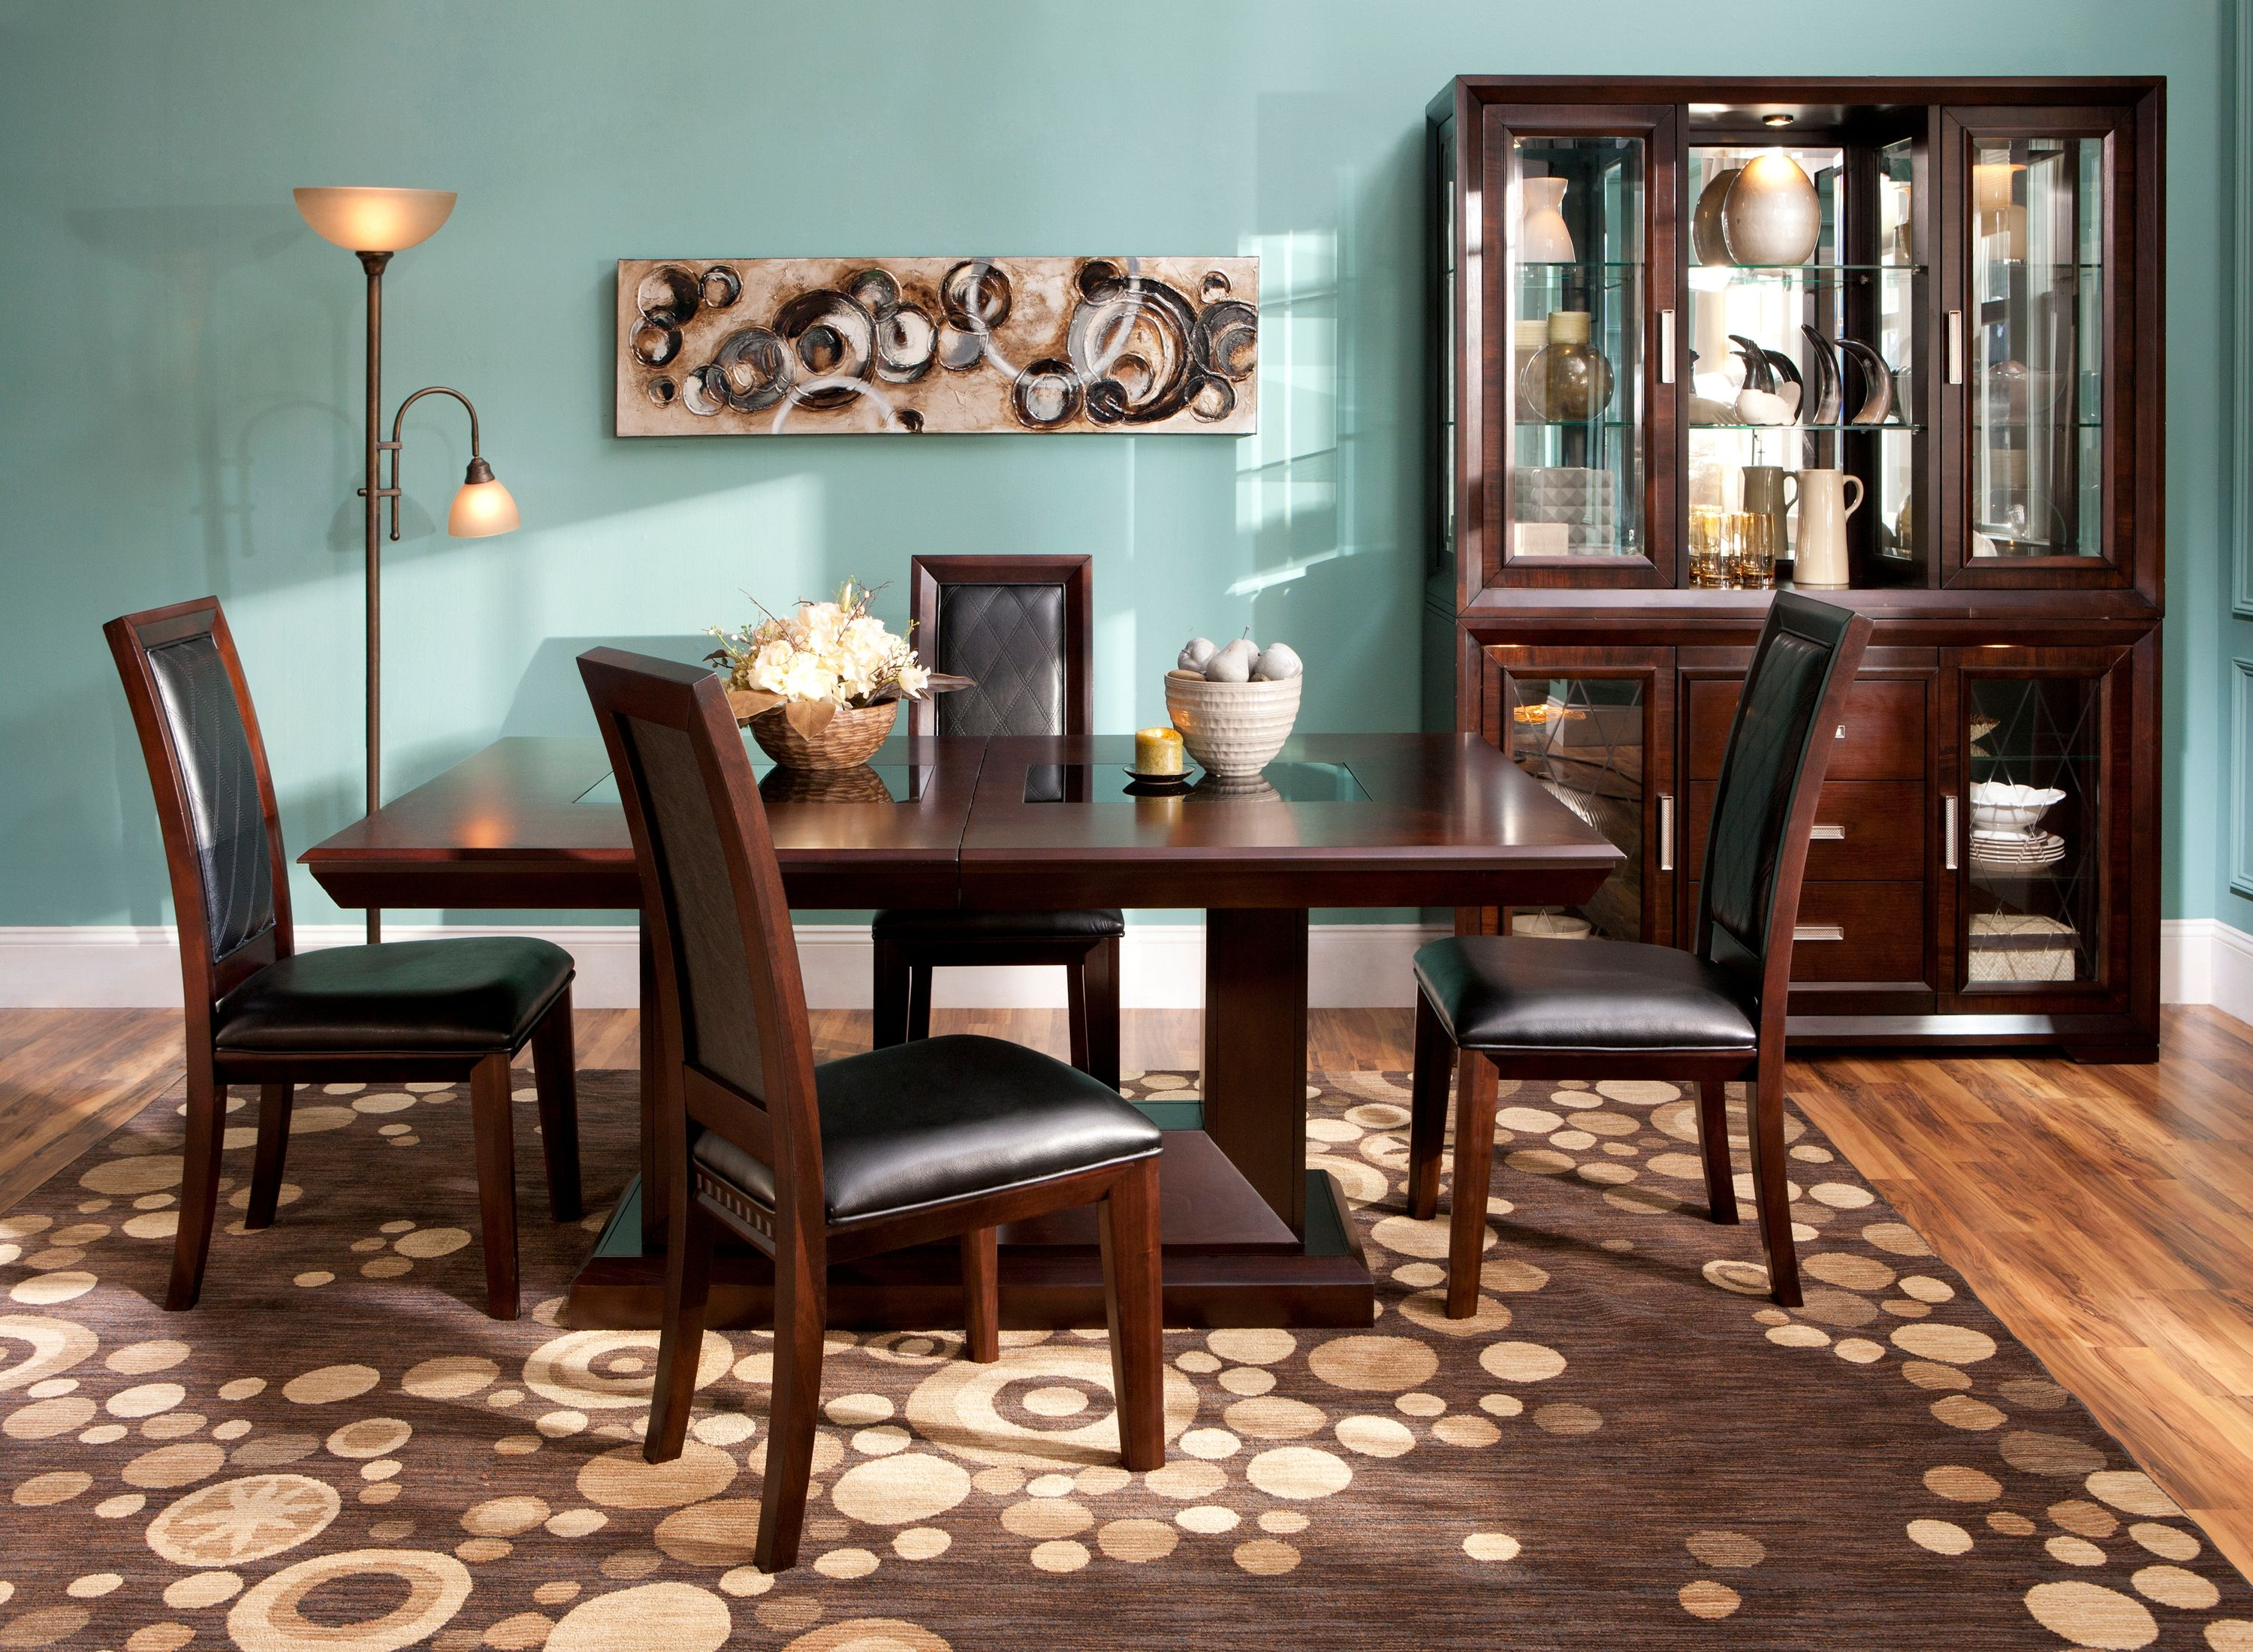 Old World Dining Room Sets Does Your Table Make A Statement Shop The Dine In Style Event And